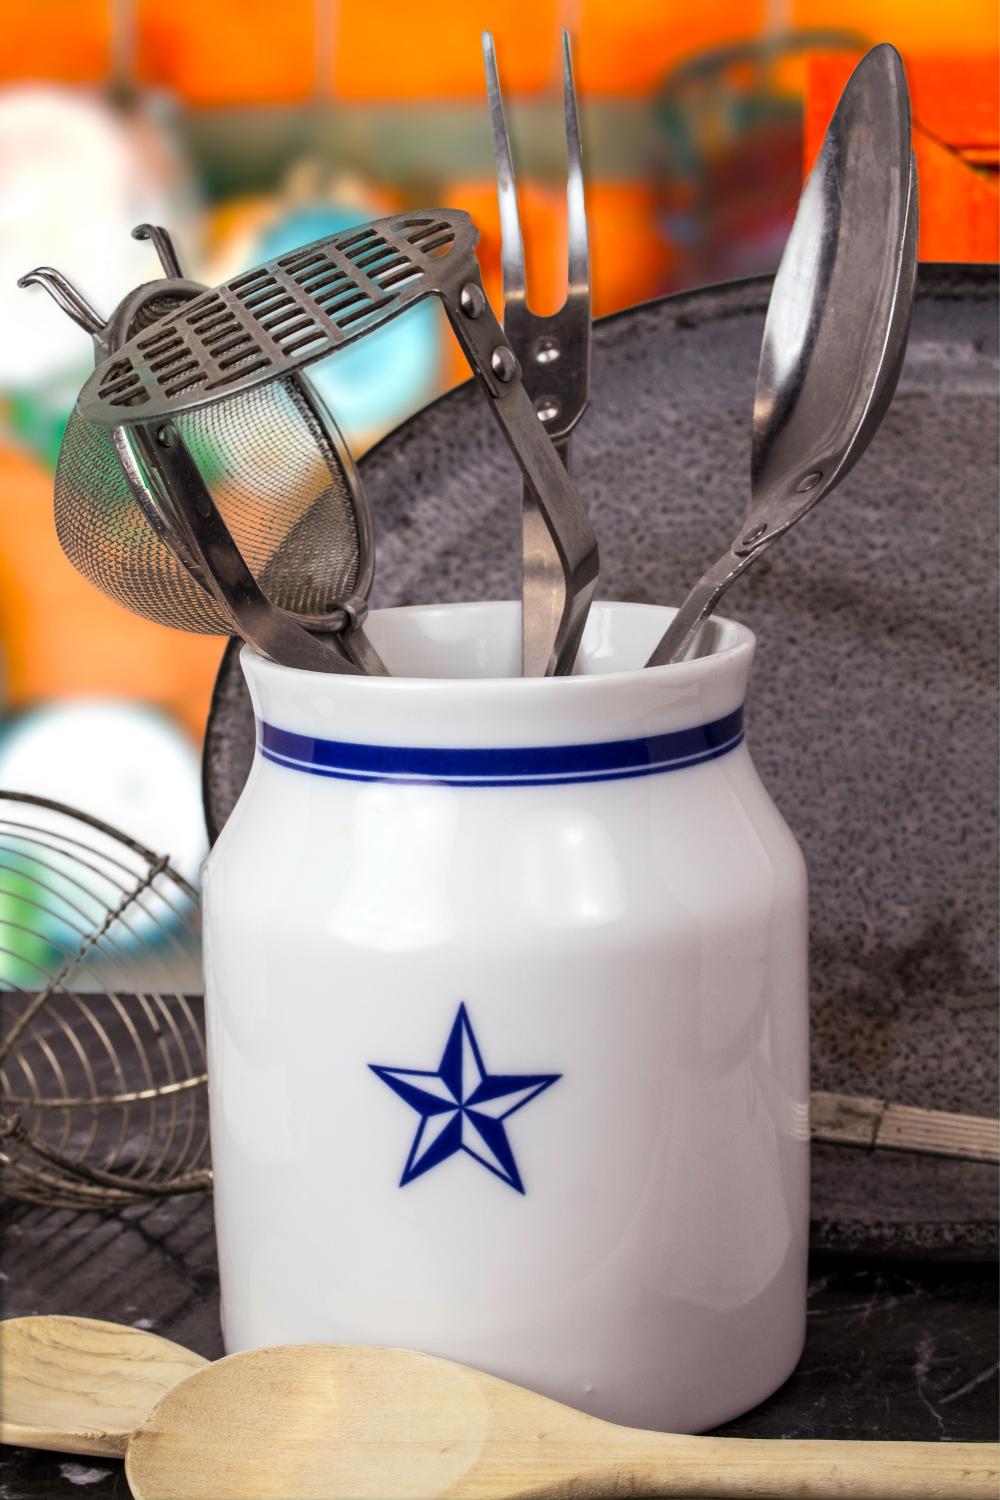 White clay pot with blue star holding kitchen utensils